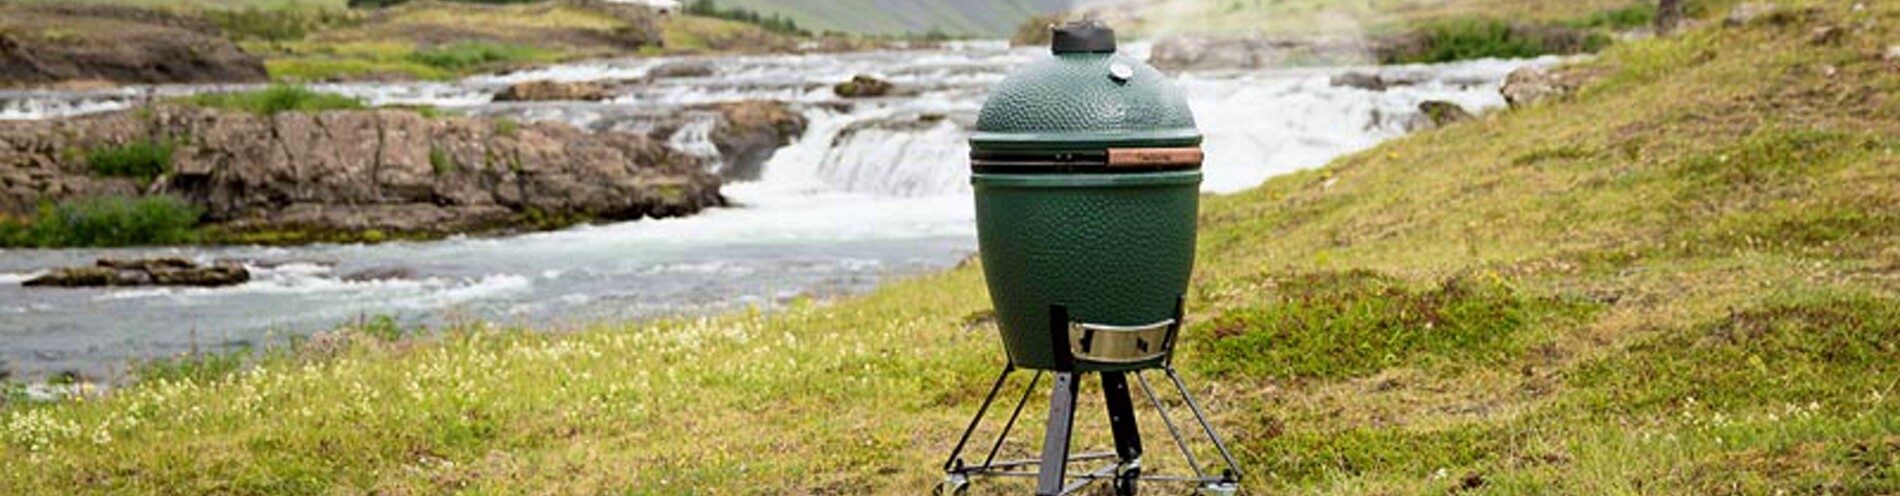 Big green egg-banner